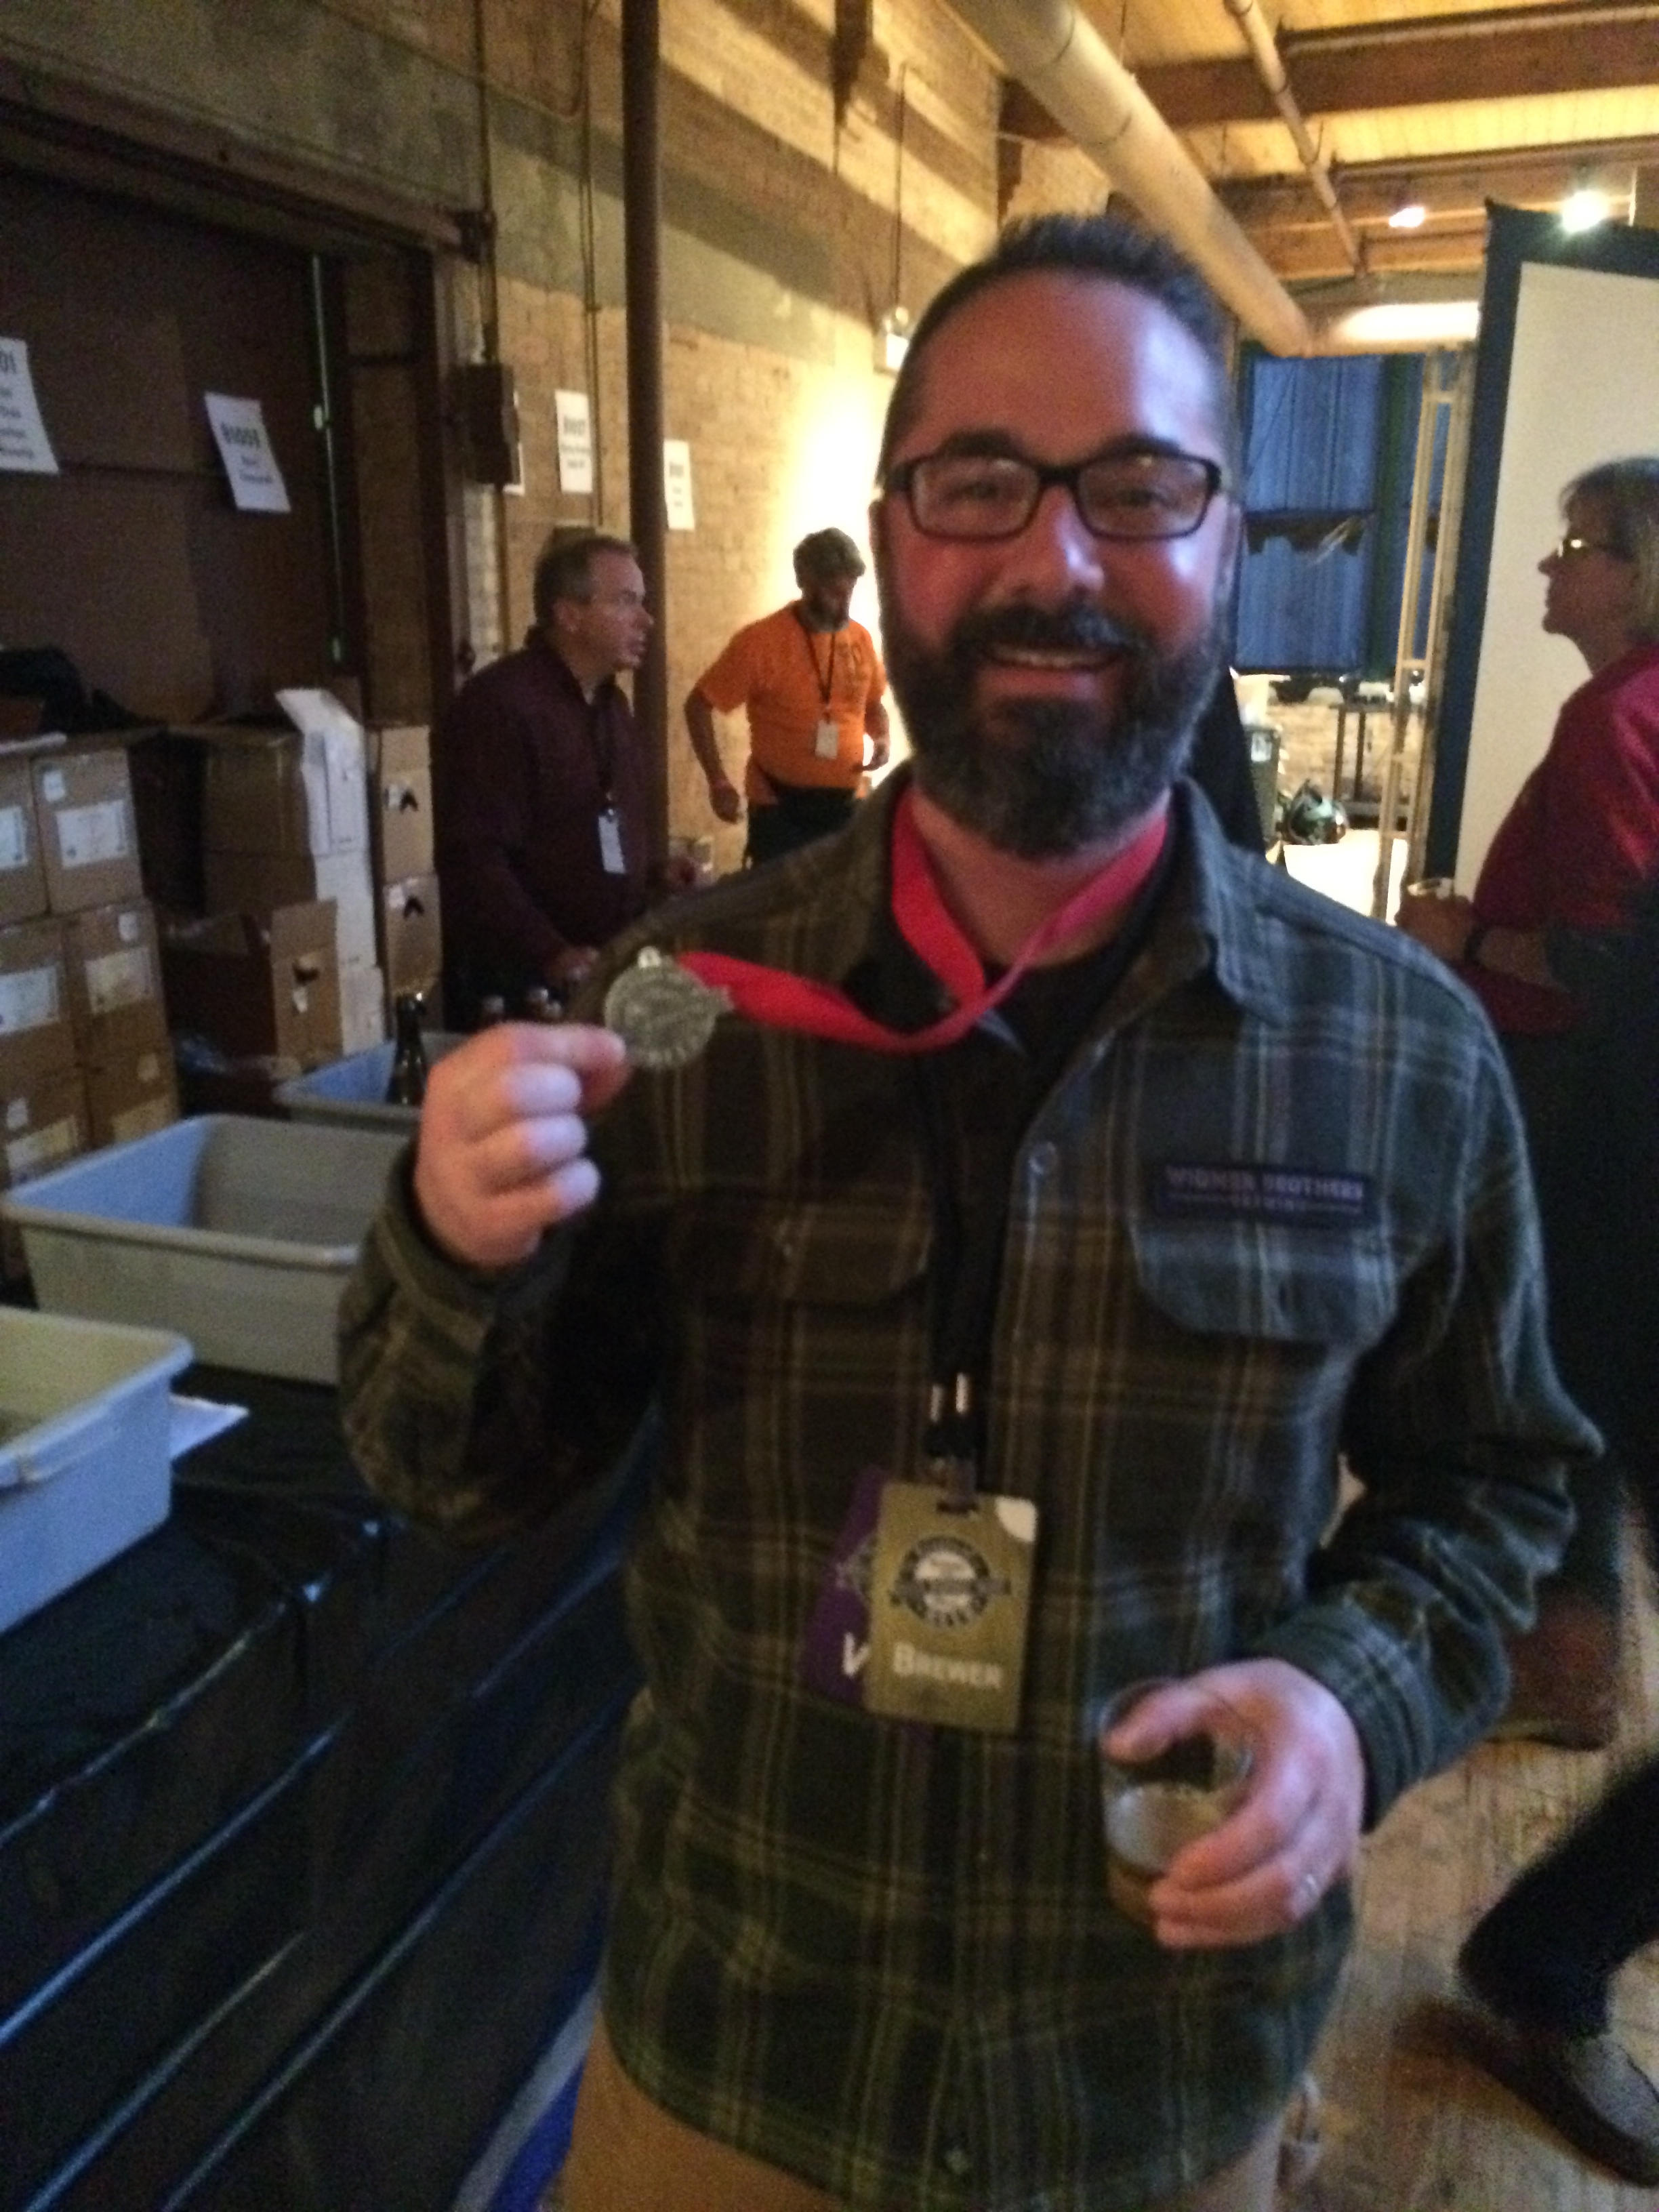 Ben Dobler wins a Silver Medal at the 2013 Festival of Wood and Barrel Aged Beers in Chicago, Illinois.